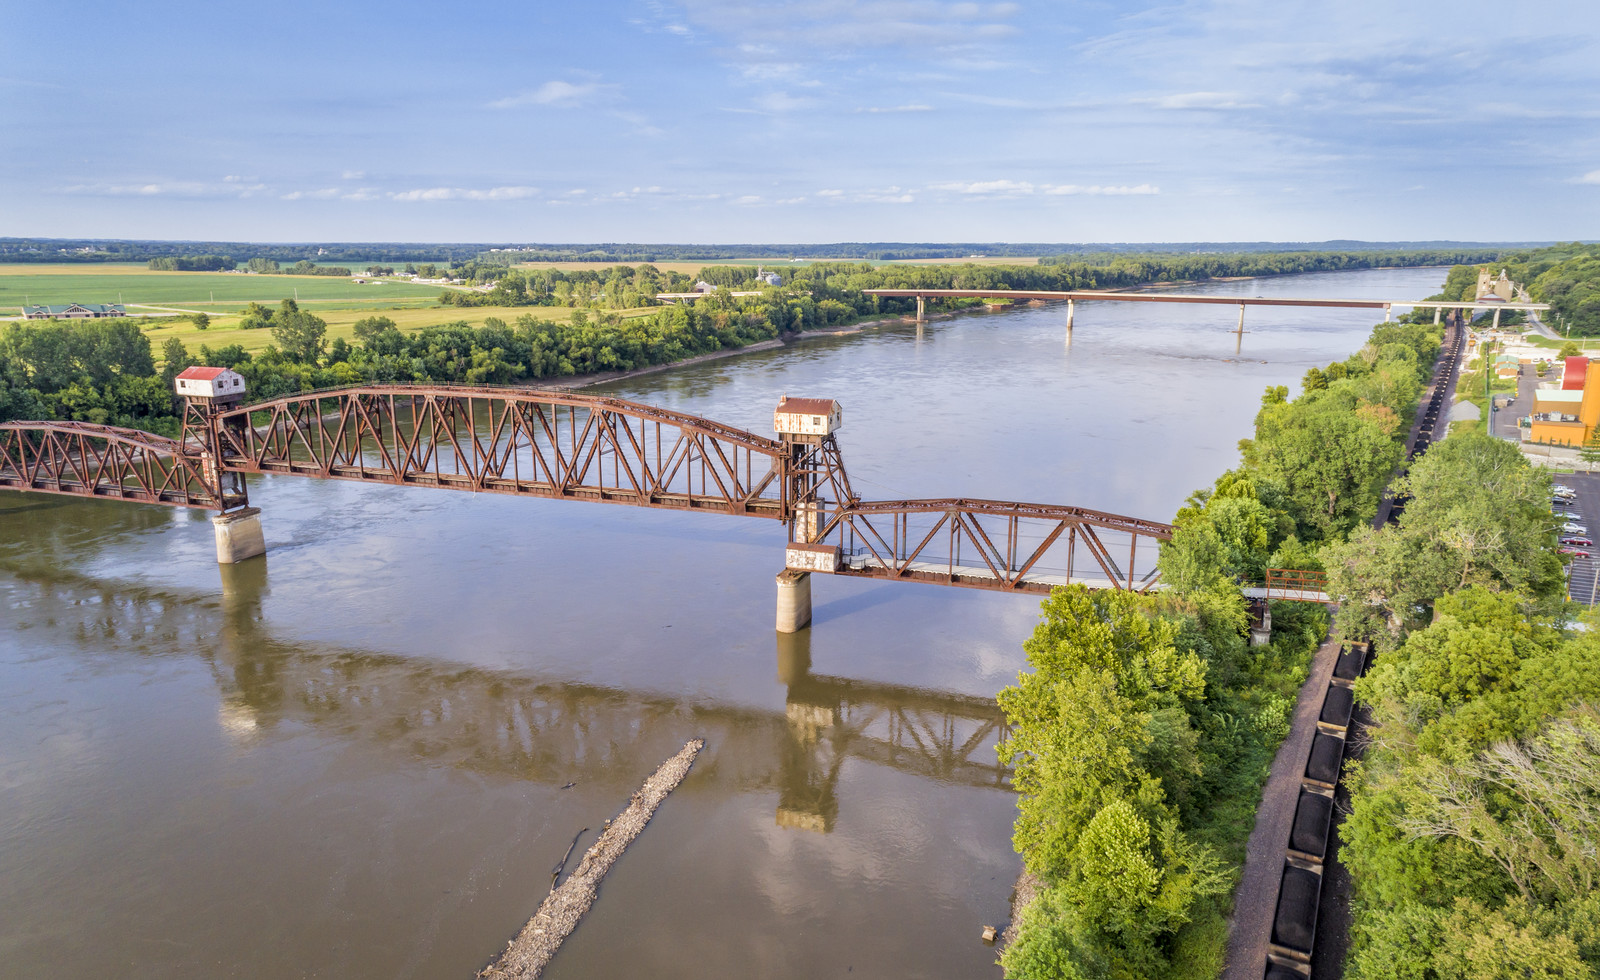 Katy Texas Bridge over the Missouri River, with trees lining both banks